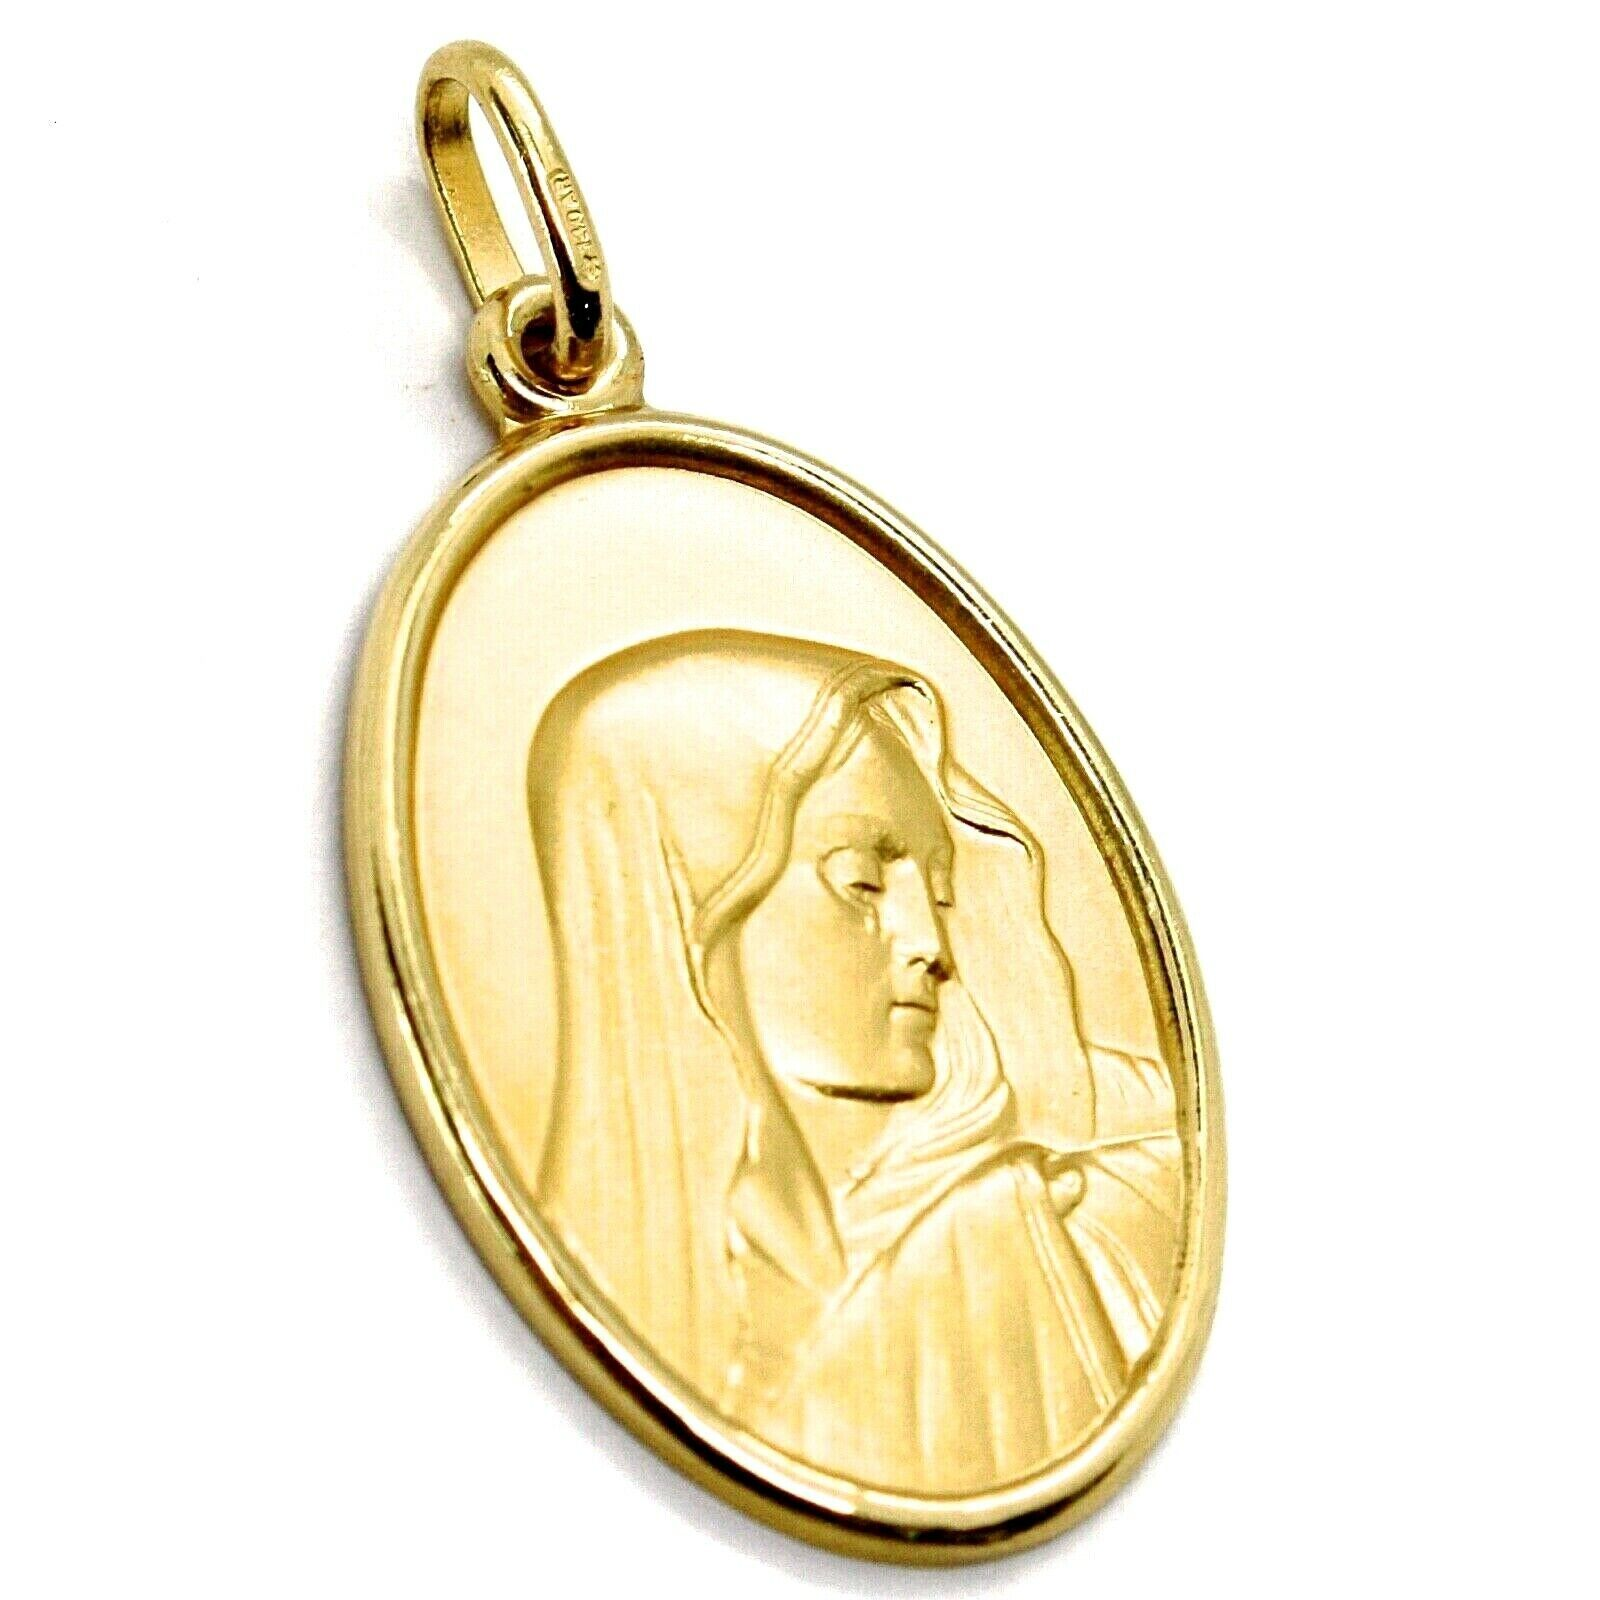 SOLID 18K YELLOW GOLD OUR LADY OF SORROWS, 24 MM OVAL MEDAL, MATER DOLOROSA